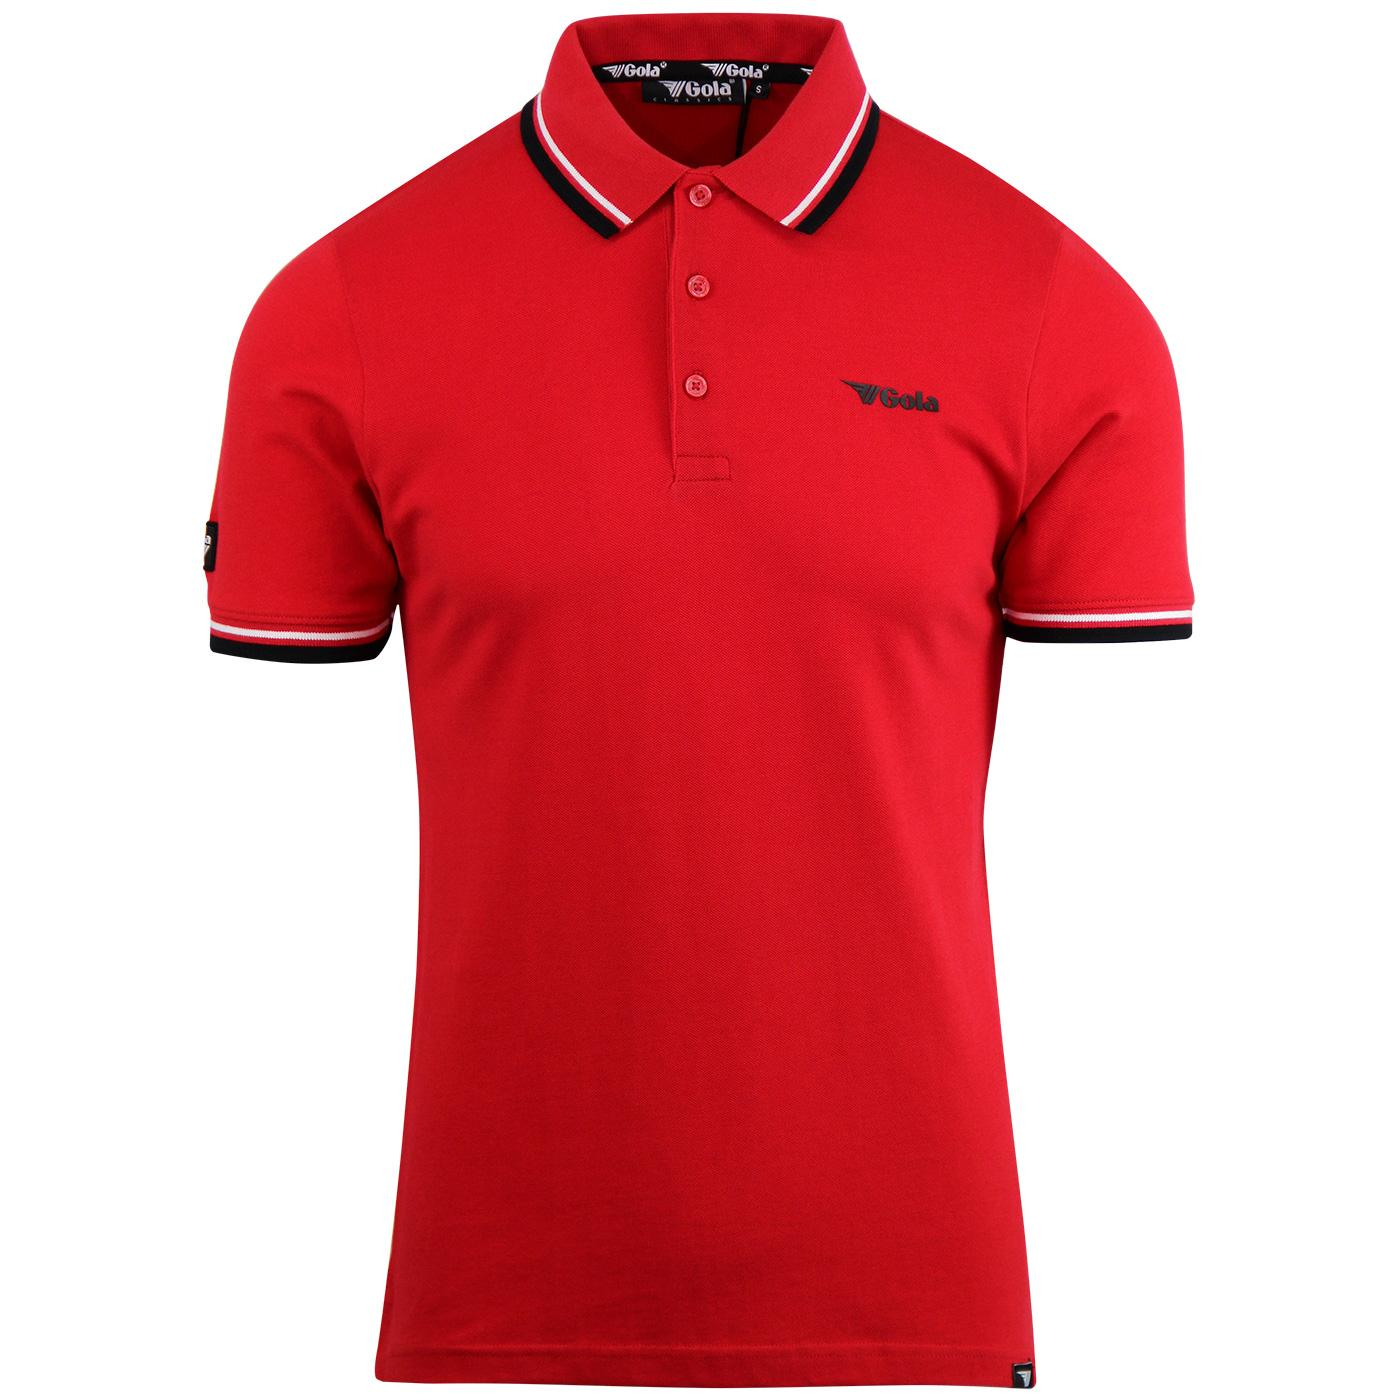 Brennan GOLA CLASSICS Retro Tipped Pique Polo RED